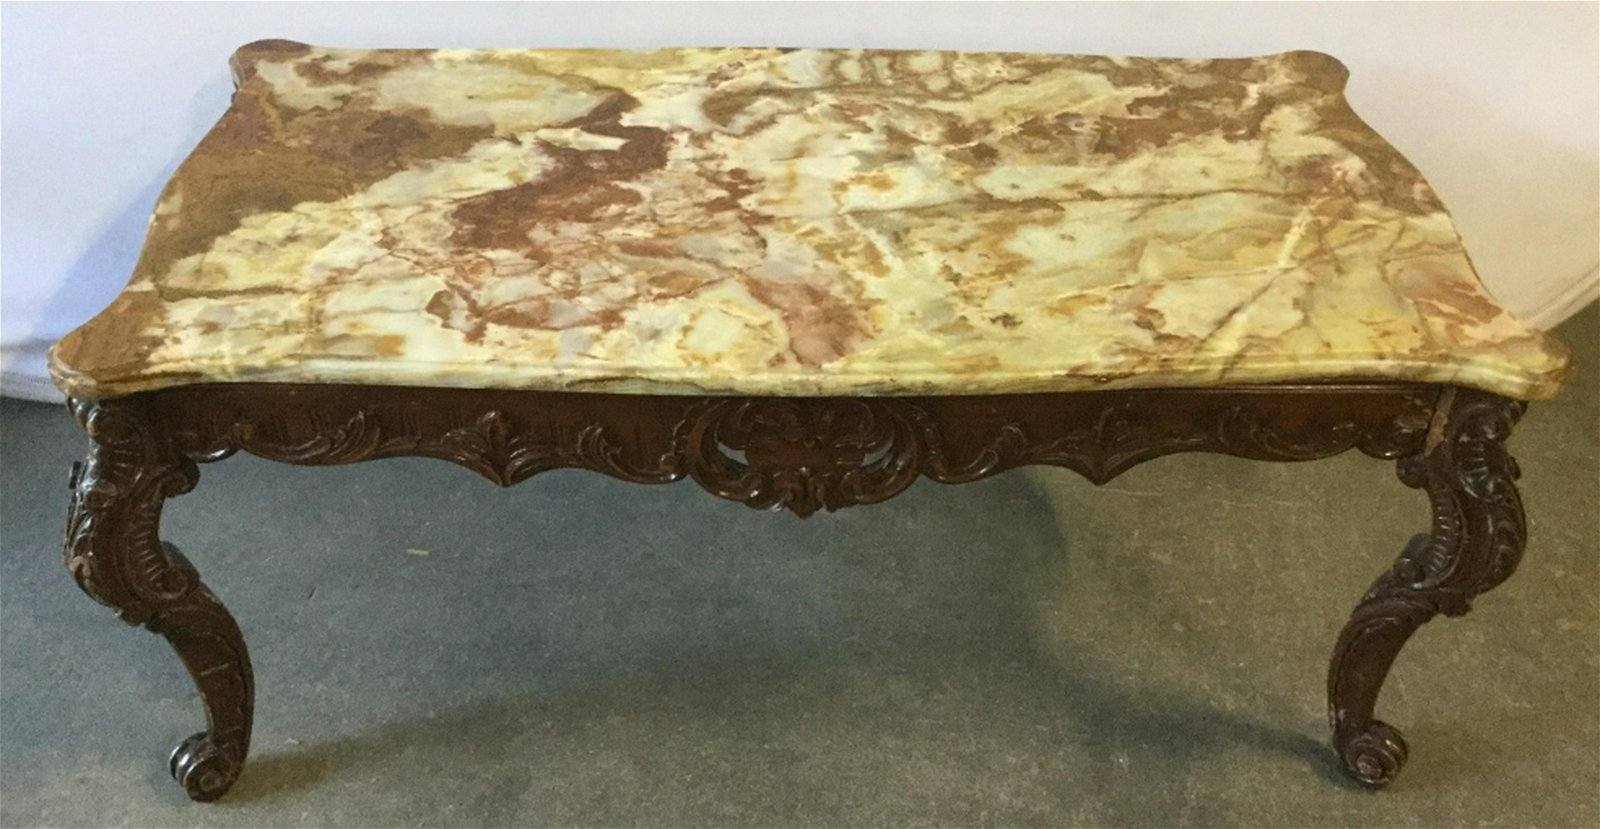 Ornately Carved Wood Coffee Table W Stone Top Stone top